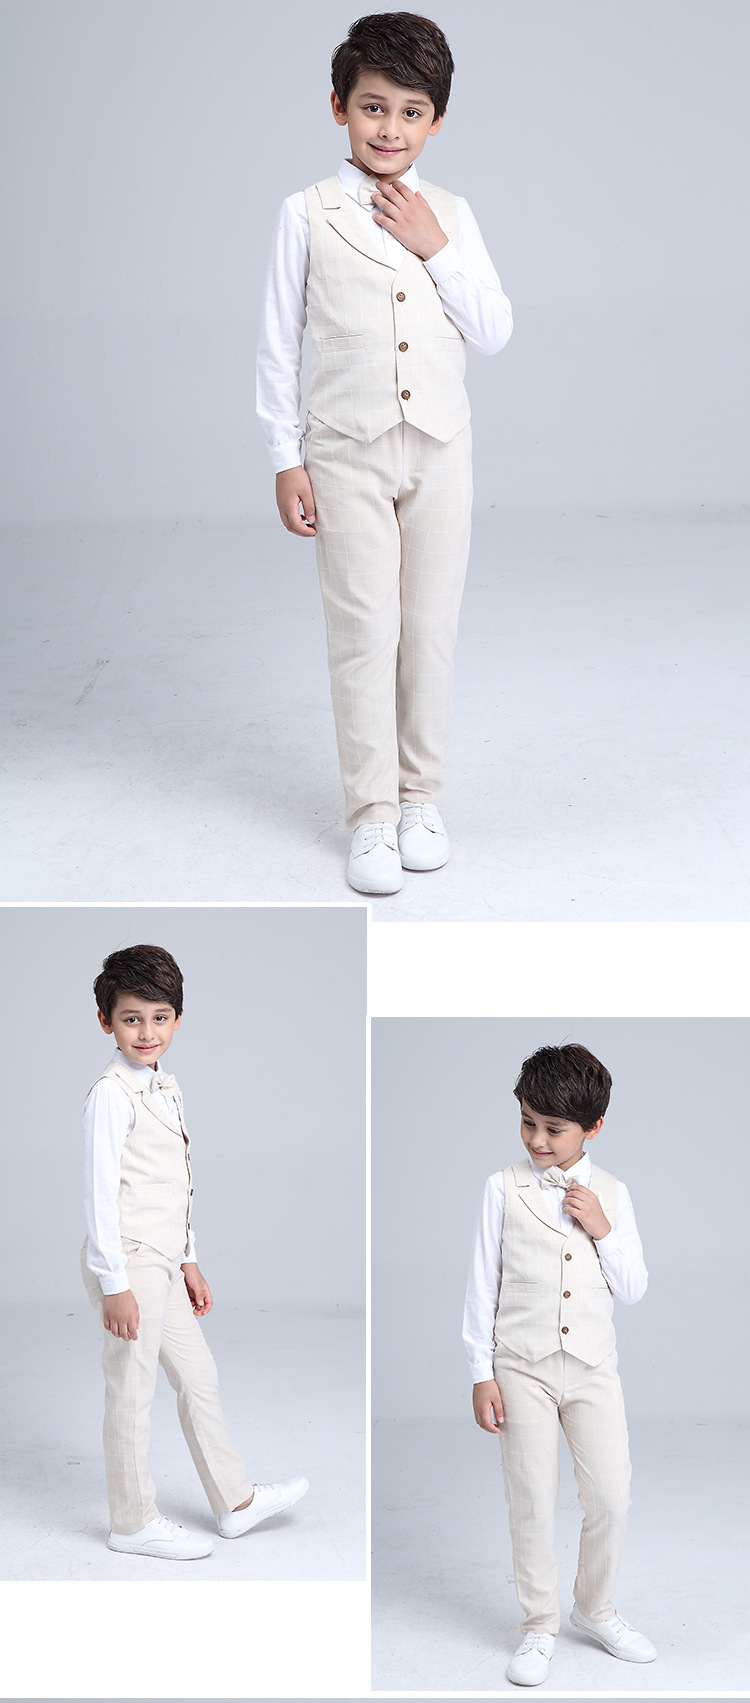 HTB1mBGxQXXXXXX.XVXXq6xXFXXXN - 2017 Boys Blazer Suit Kids Cotton Vest+Tie+Blouse+Pants 4 pieces/set Clothes Sets Boys Formal Blazers for Weddings Party EB156